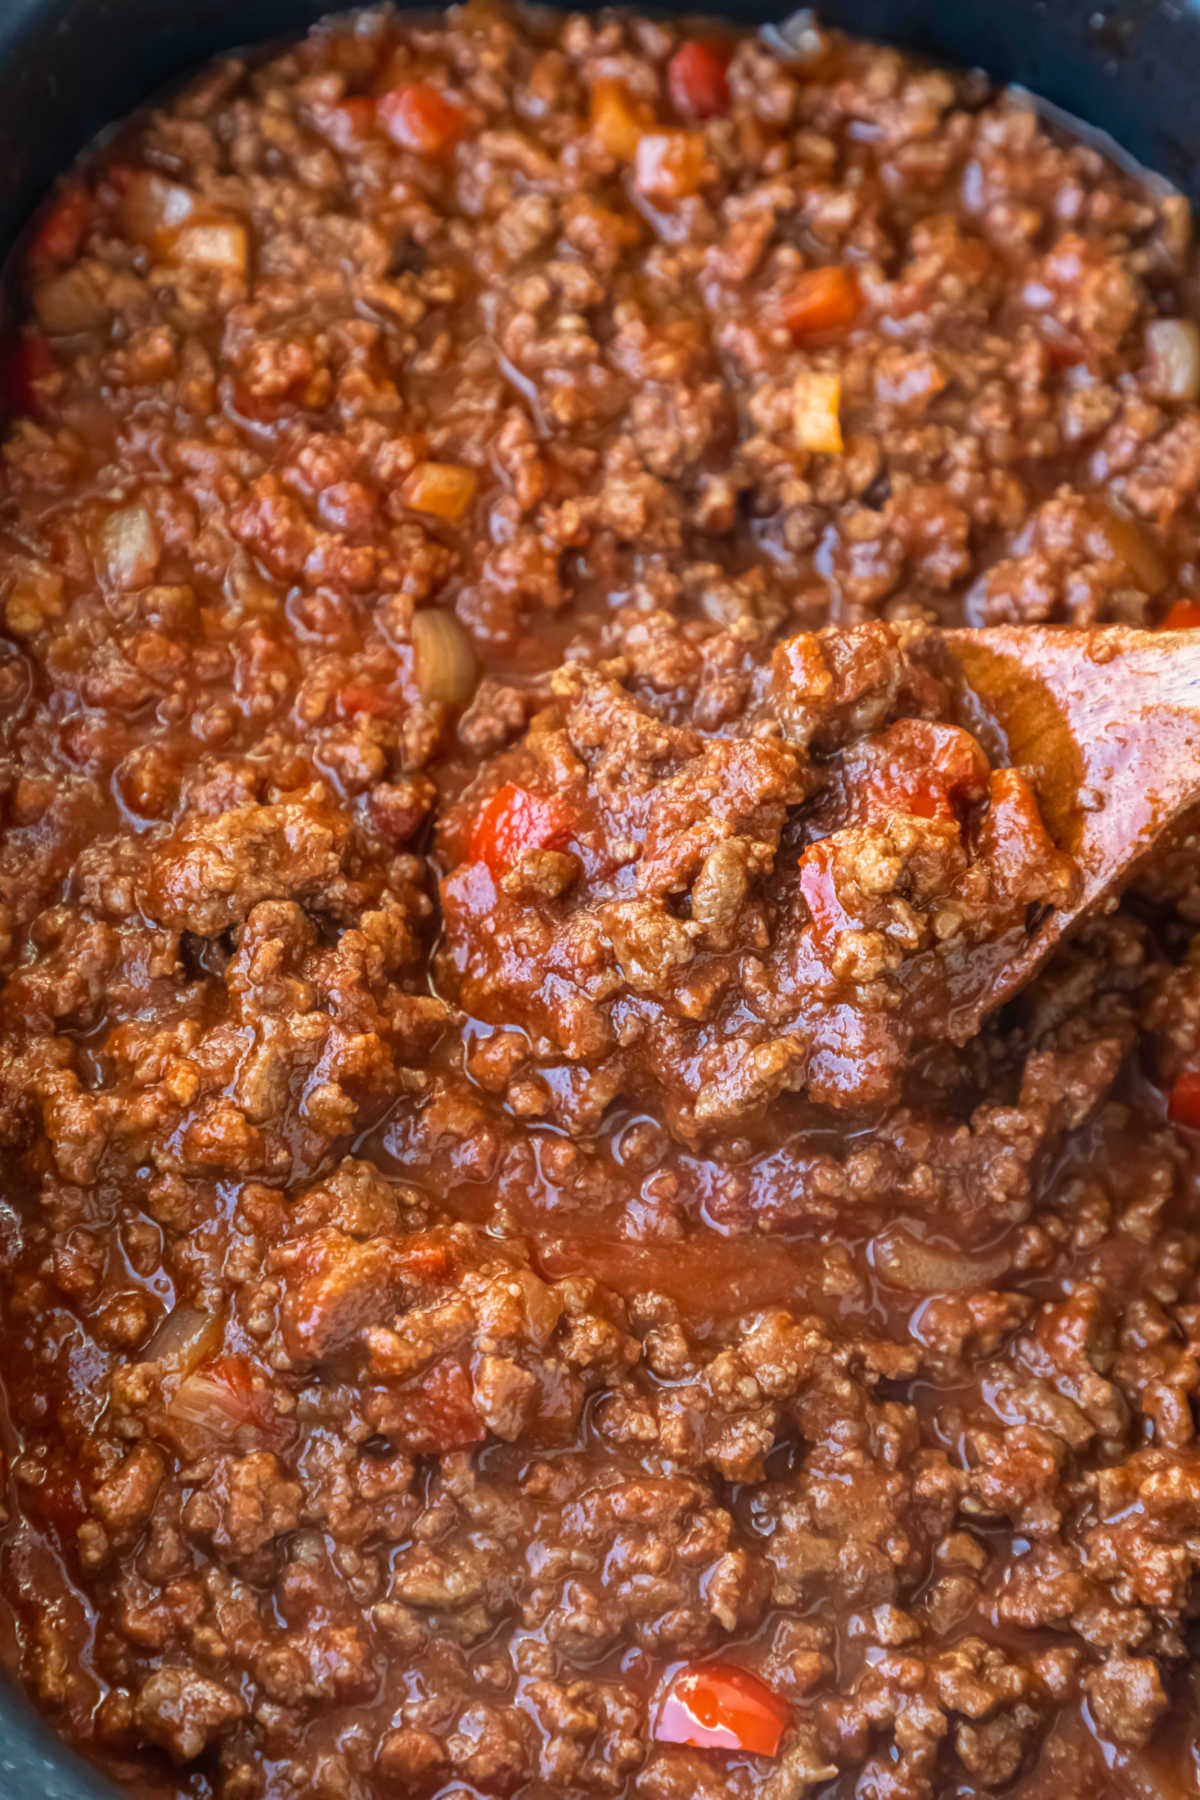 Wooden spoon stirring sloppy joes in a slow cooker.